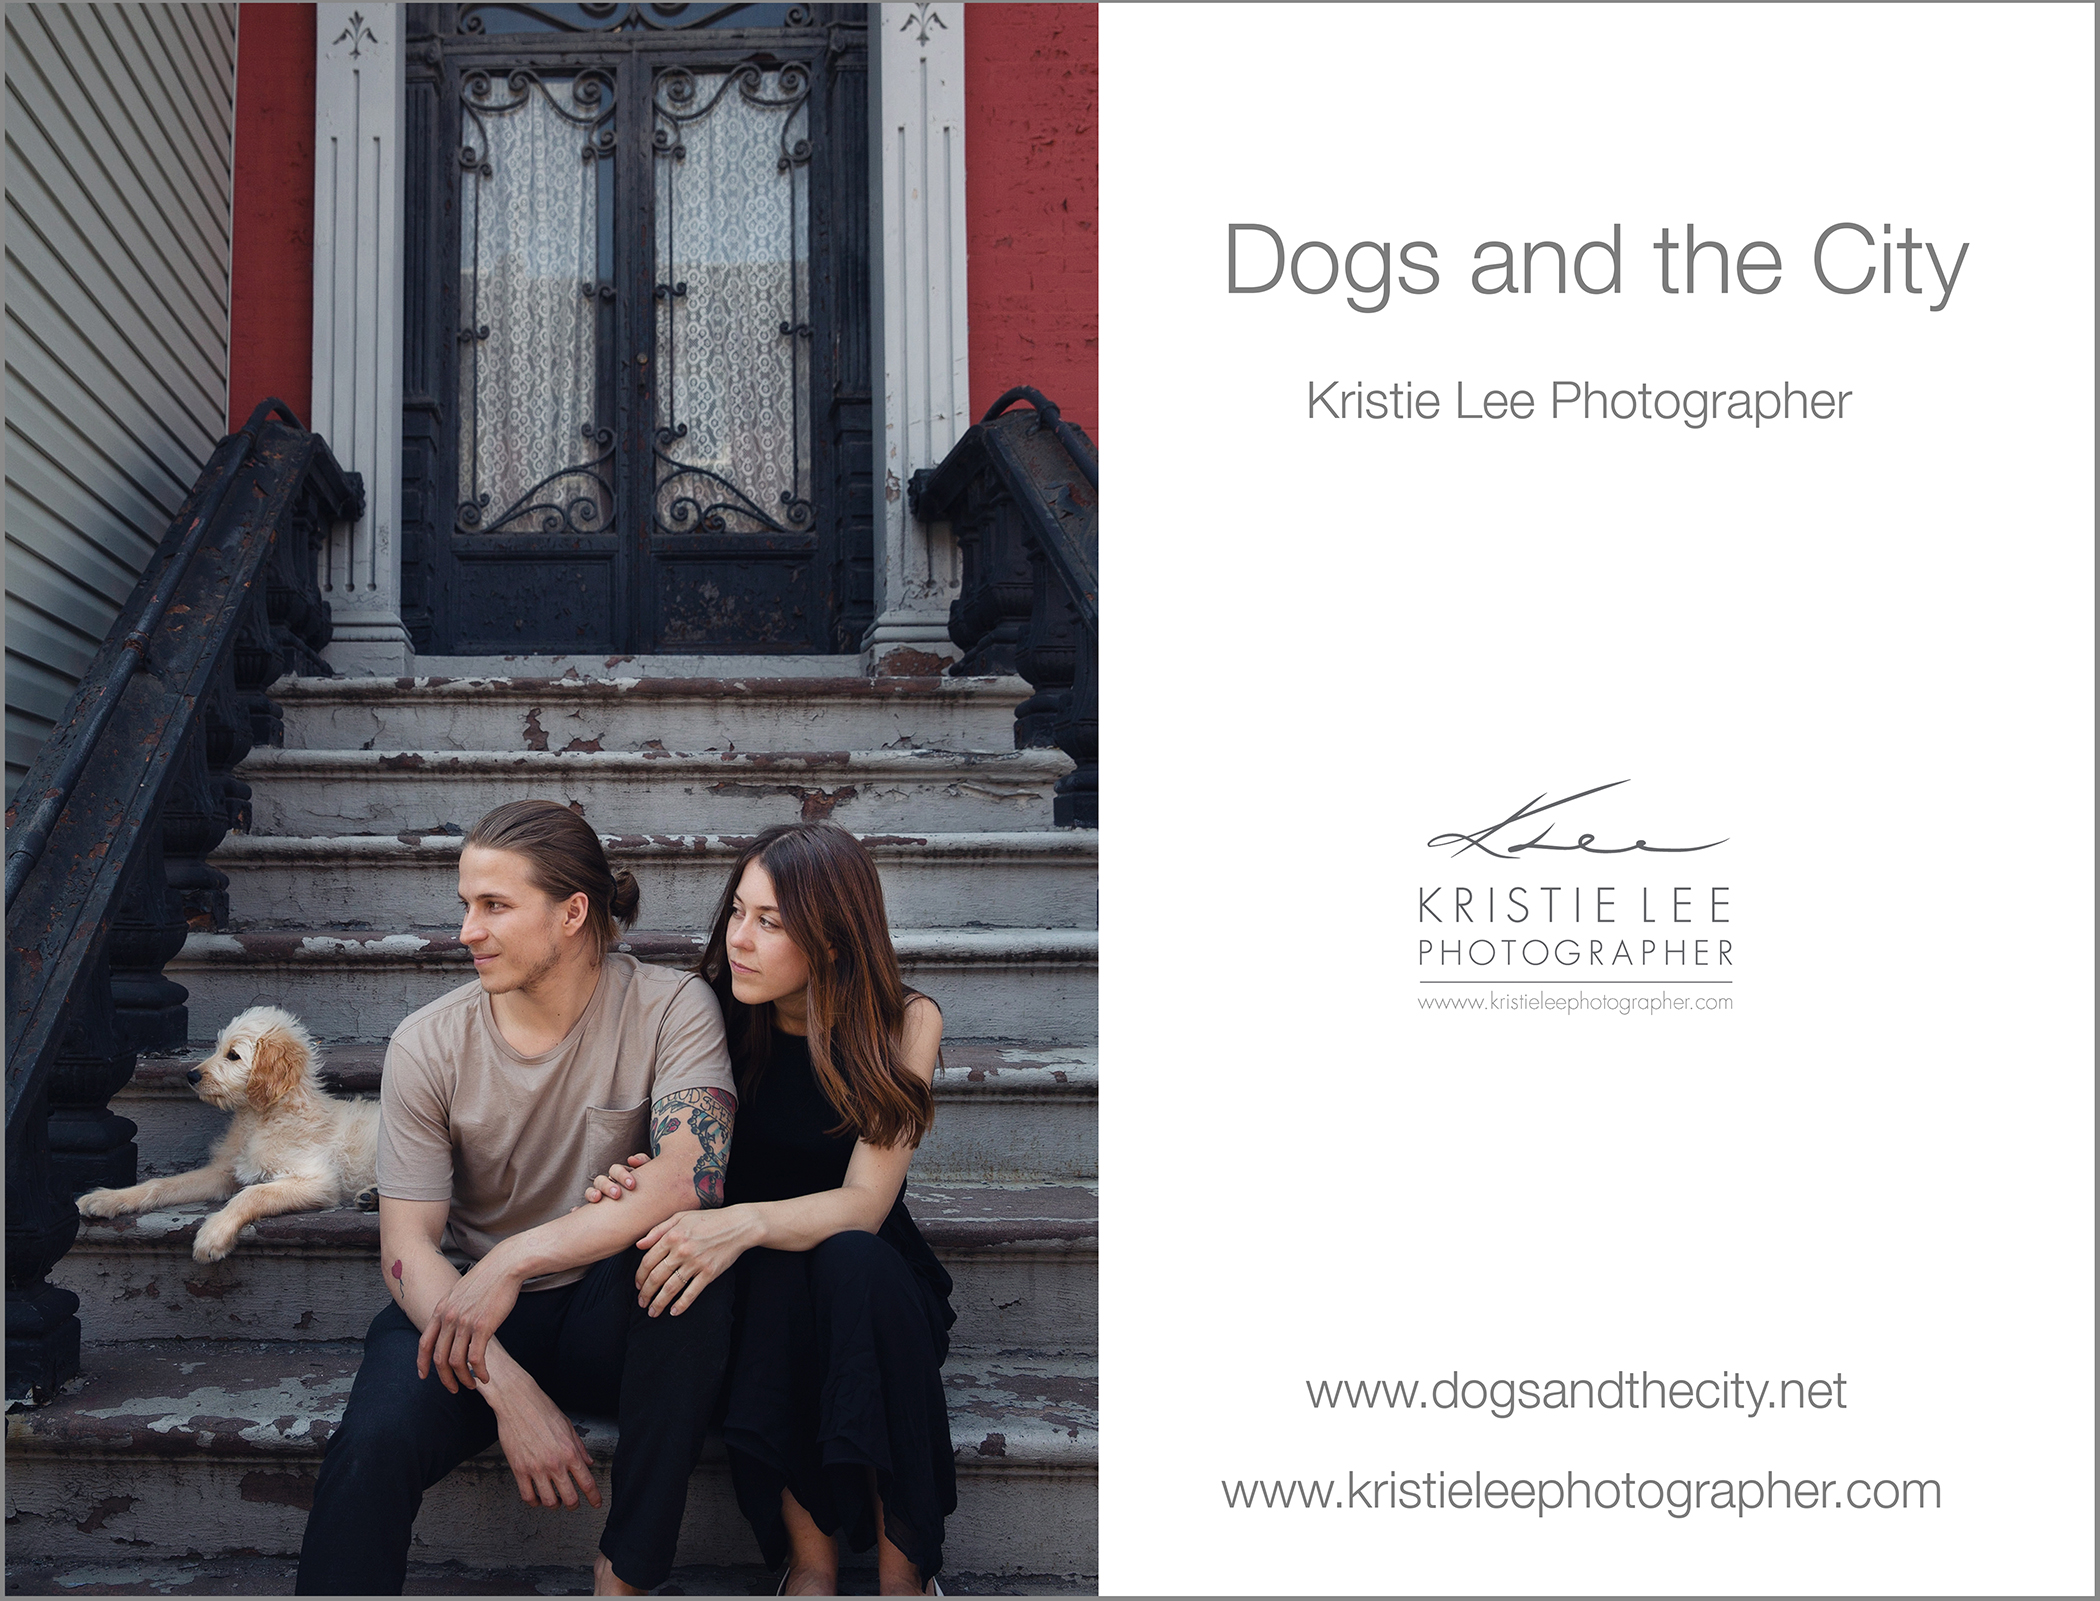 Odin dogs_and_the_city kristie_lee_photographer